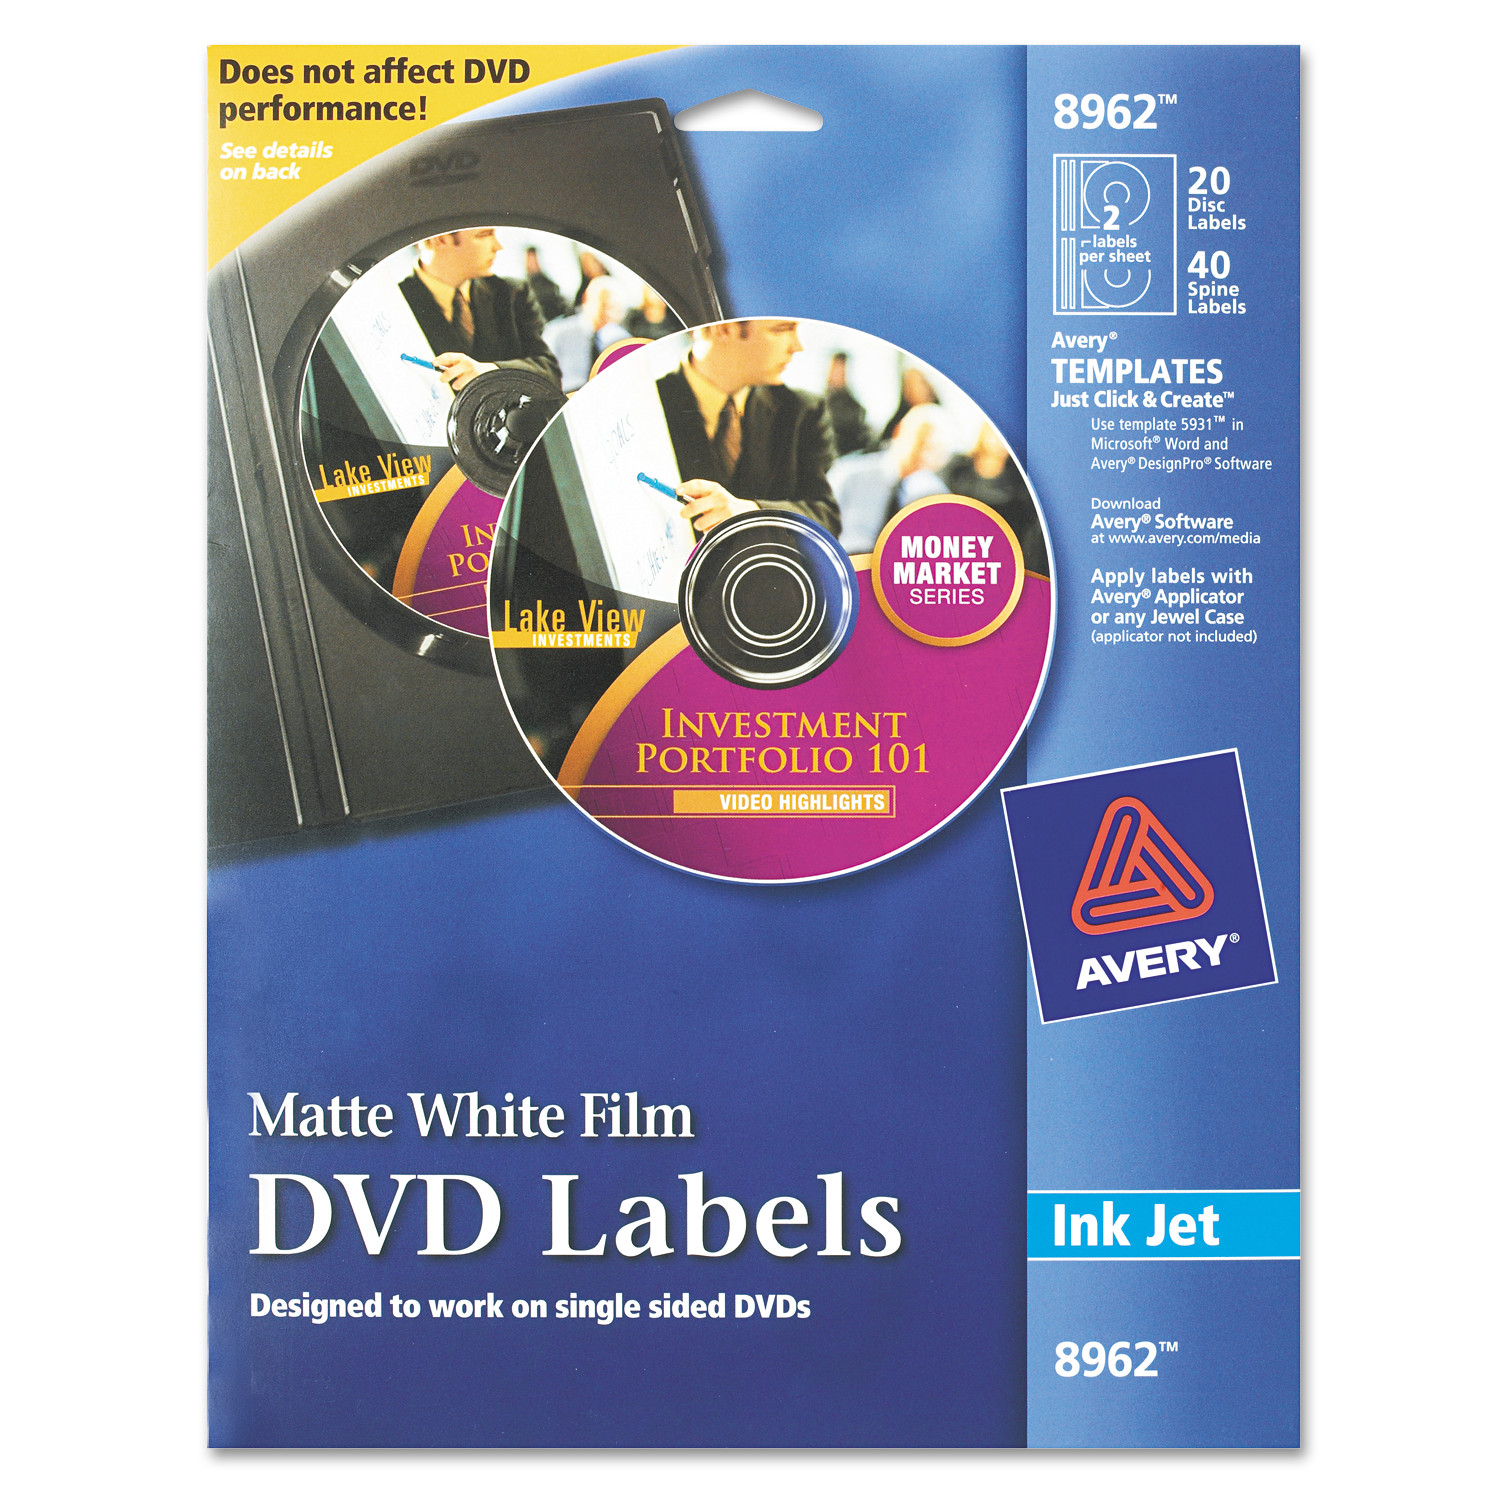 Avery Inkjet Dvd Labels Matte White 20pack Walmart